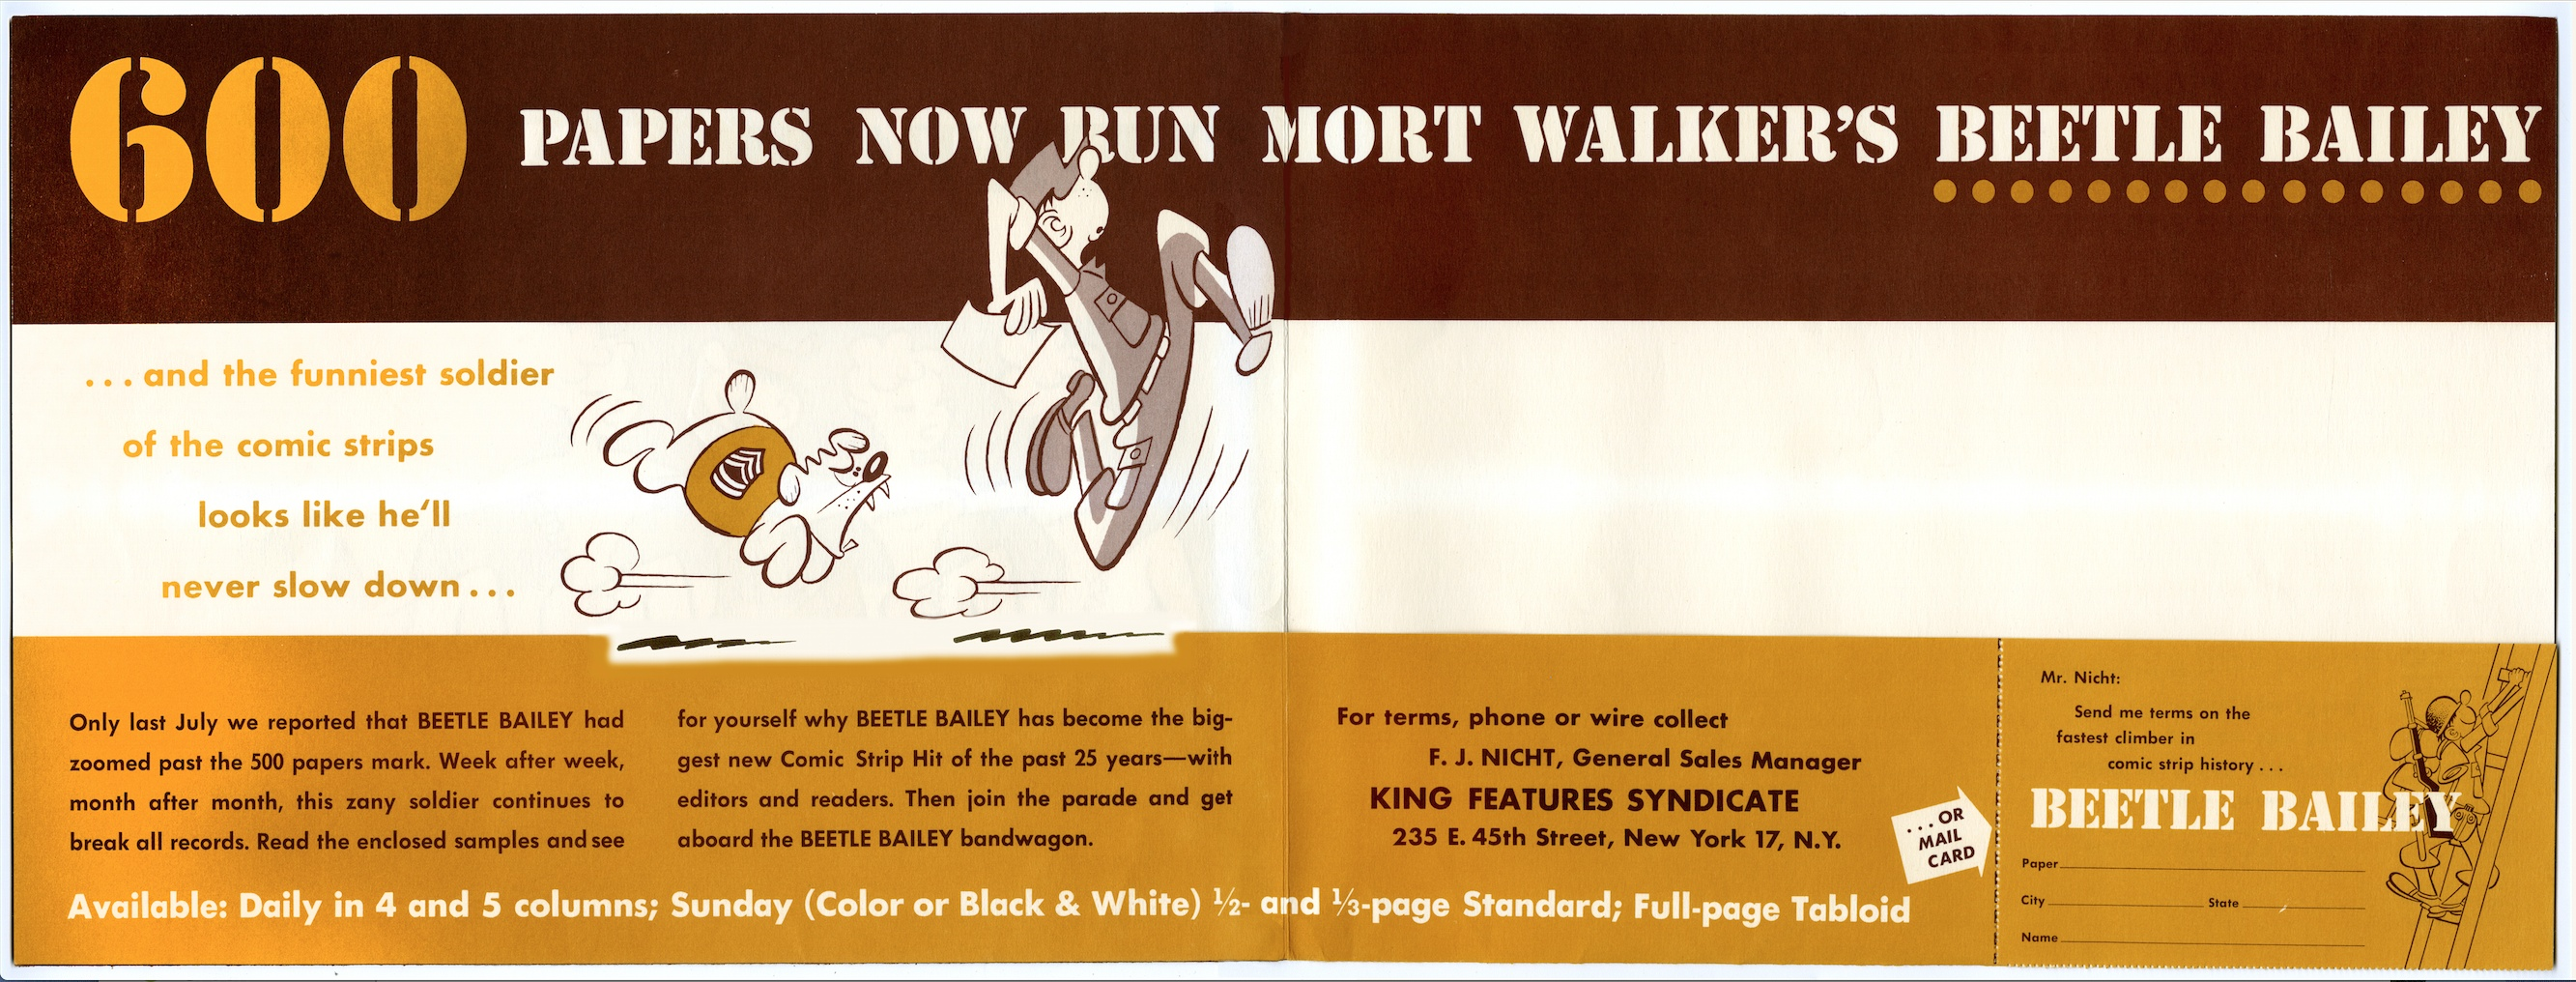 Beetle Bailey Sales Brochure Interior, 1957.